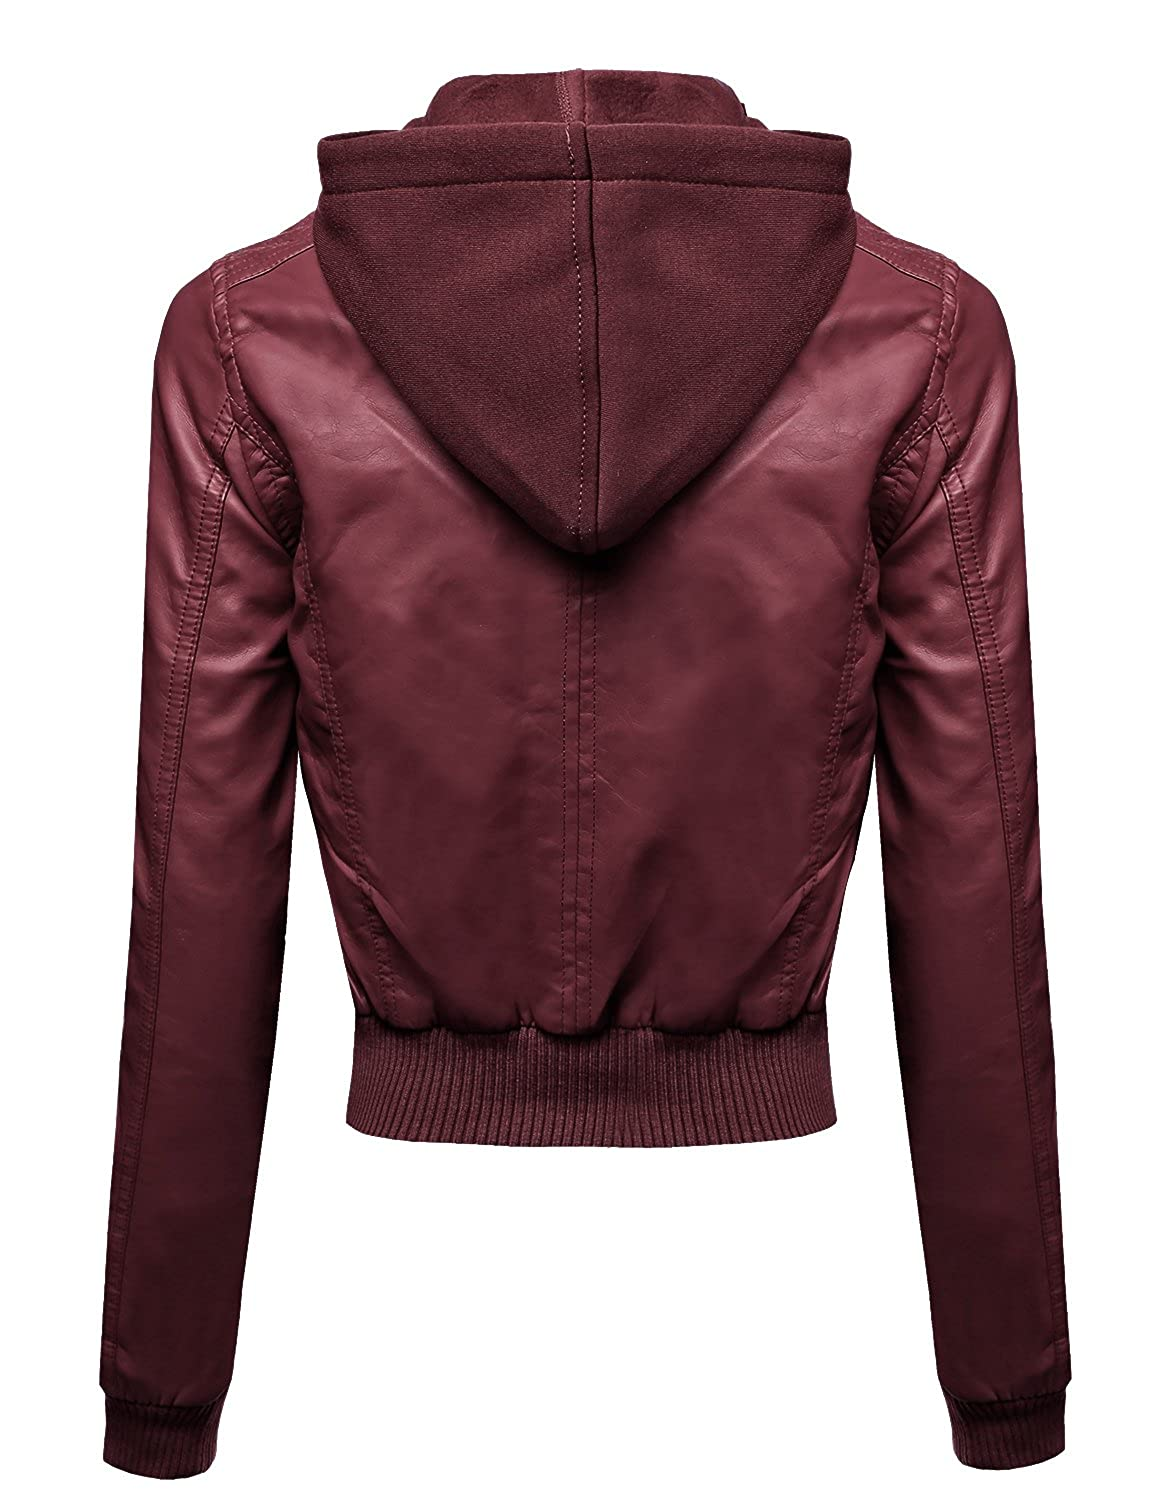 55370cab00a Awesome21 Faux Leather Detachable Hood Biker Bomber Jacket Burgundy Size S  at Amazon Women's Coats Shop